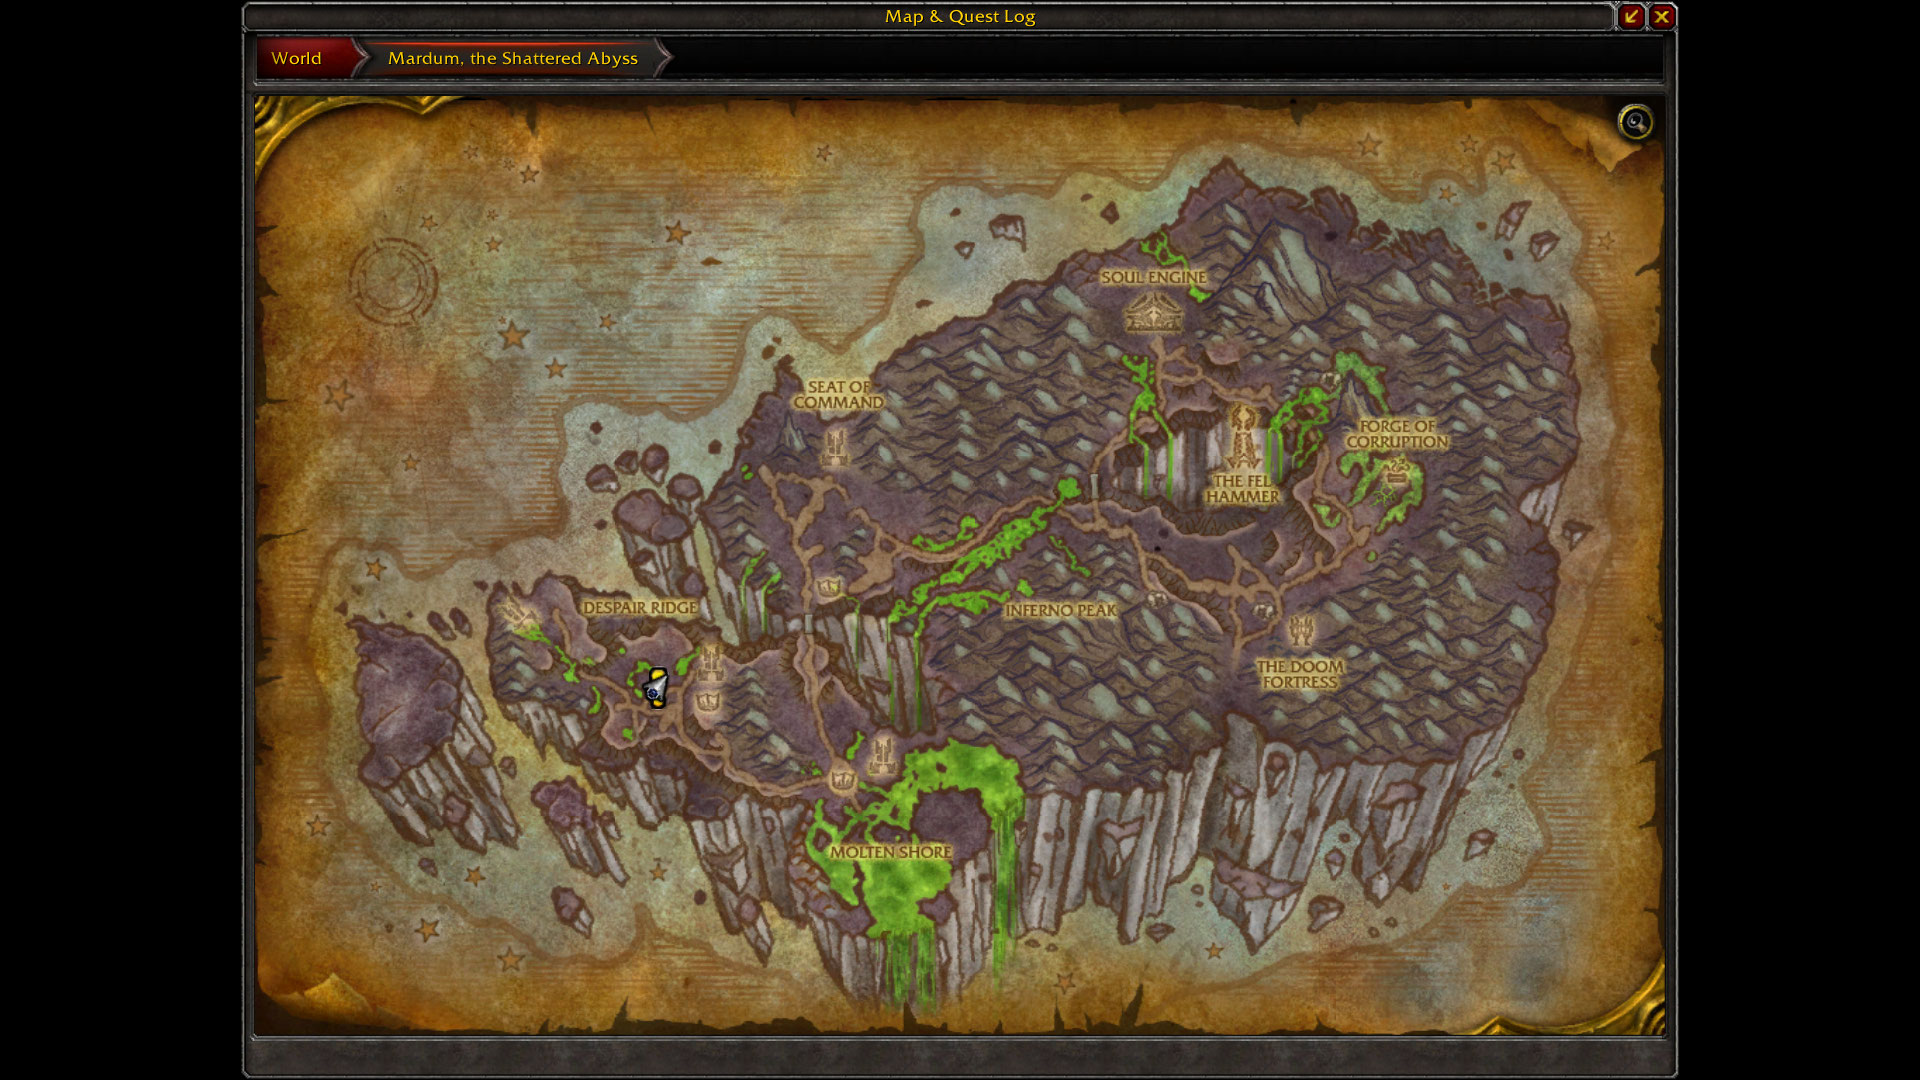 World of Warcraft: Legion Maps - Blizzplanet | Warcraft on world of naruto map, world map with levels wow, doom map, warcraft 2 map, wow alliance map, starcraft ii map, northrend map, wow interactive map, prime world map, full wow map, everquest map, world of world map, world of starcraft 2, elder scrolls map, eastern kingdoms map, apocalypse world map, aion guide map, world of tanks maps, league of legends map, world of demon,